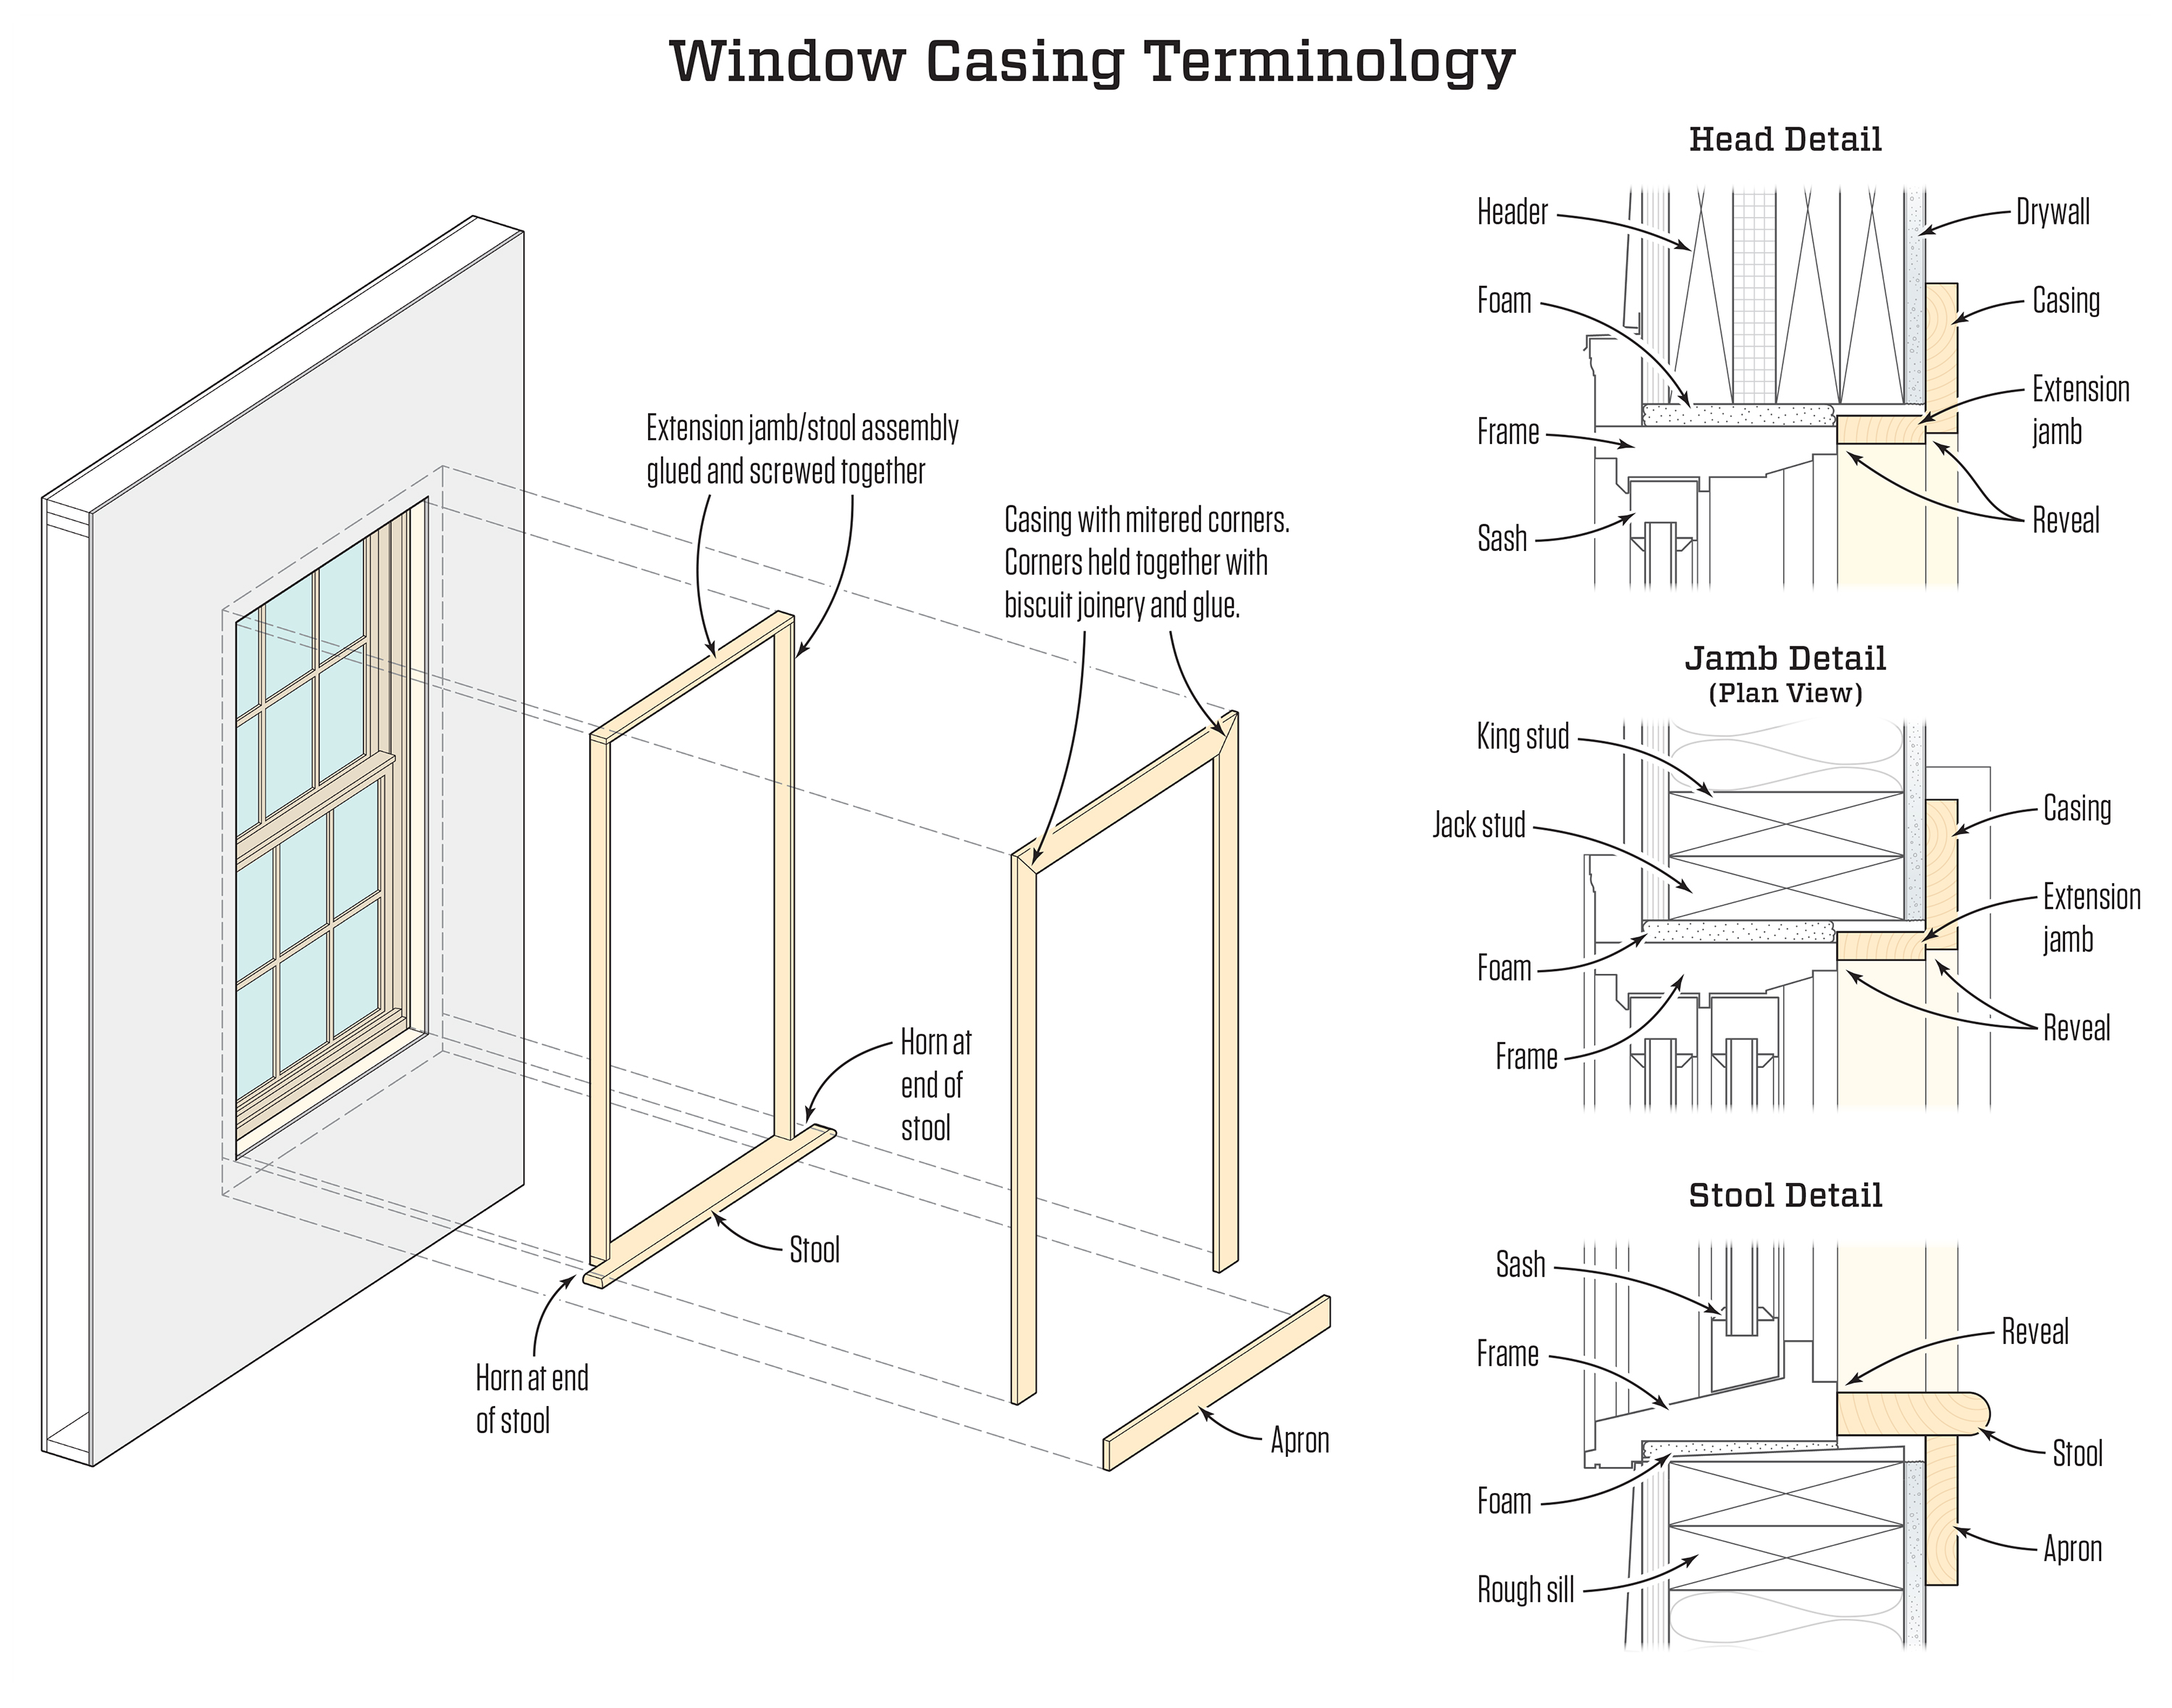 Casing Windows | JLC Online | Molding Millwork and Trim, Carpentry ...